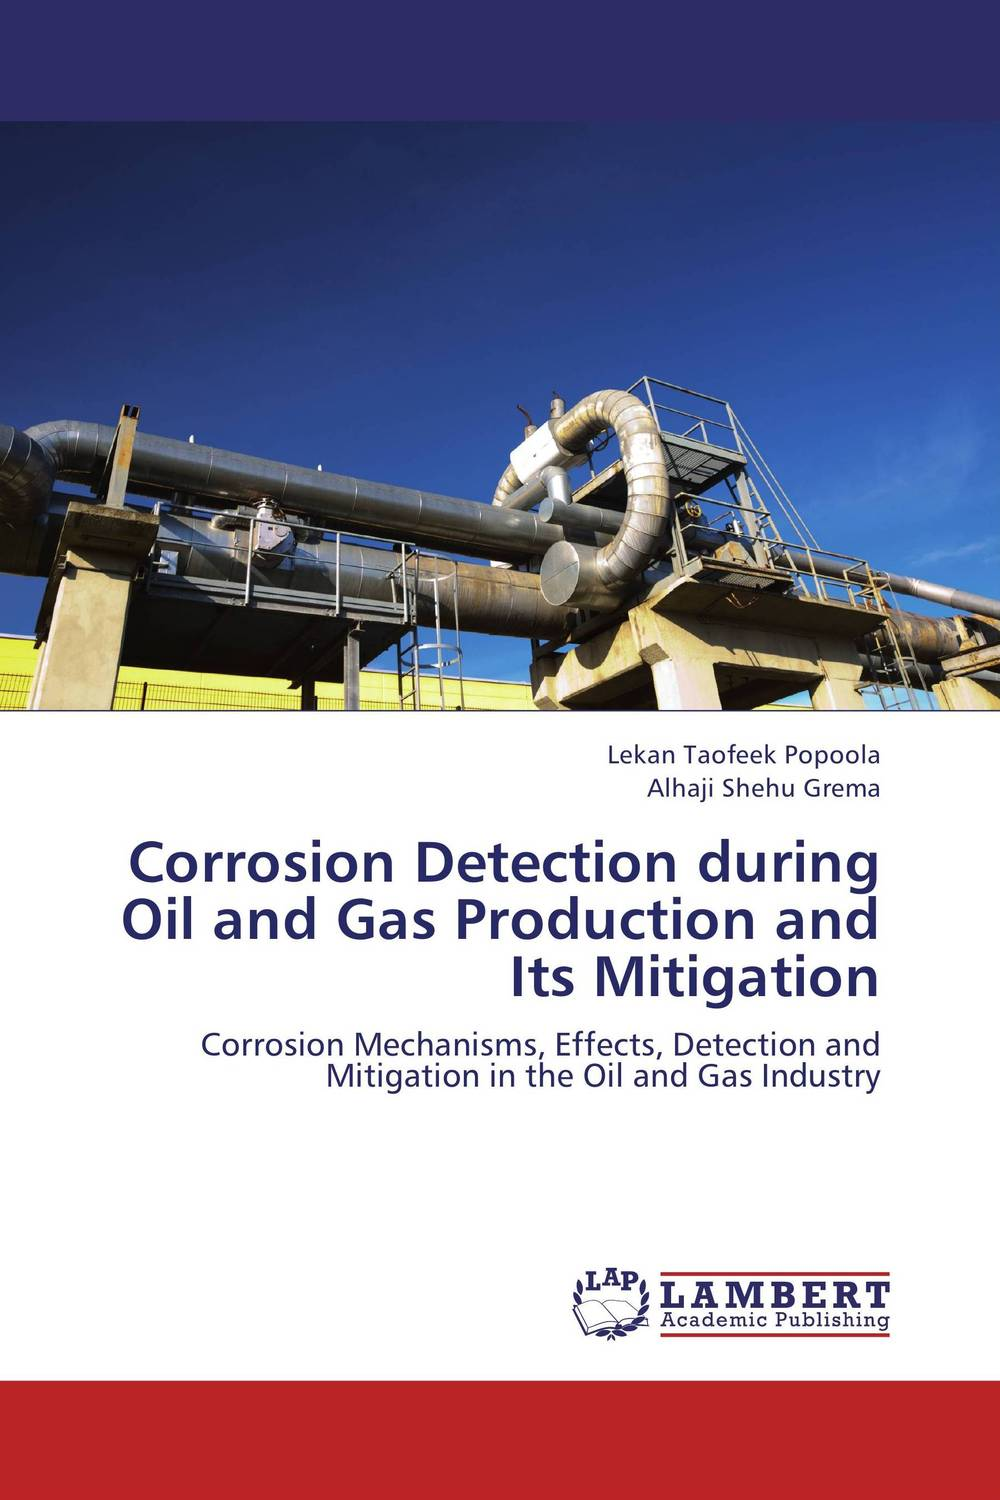 Corrosion Detection during Oil and Gas Production and Its Mitigation